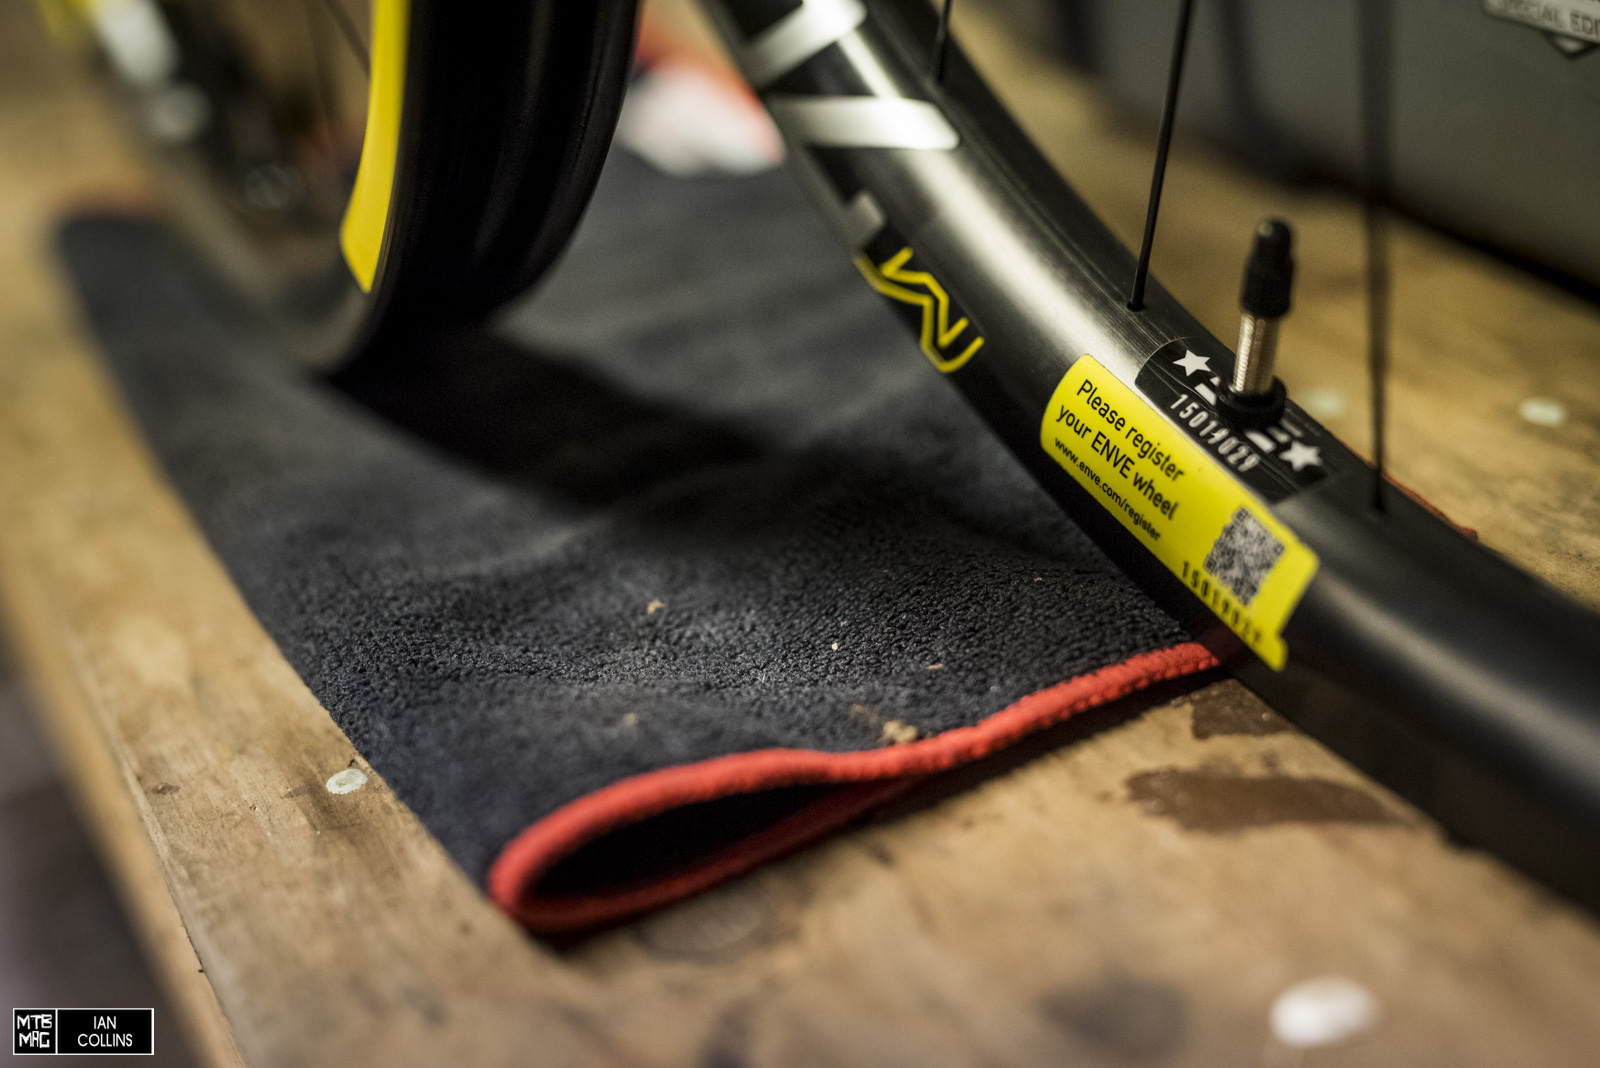 Tubeless valves are included and ENVE has a pretty cool way for their customers to register their products.